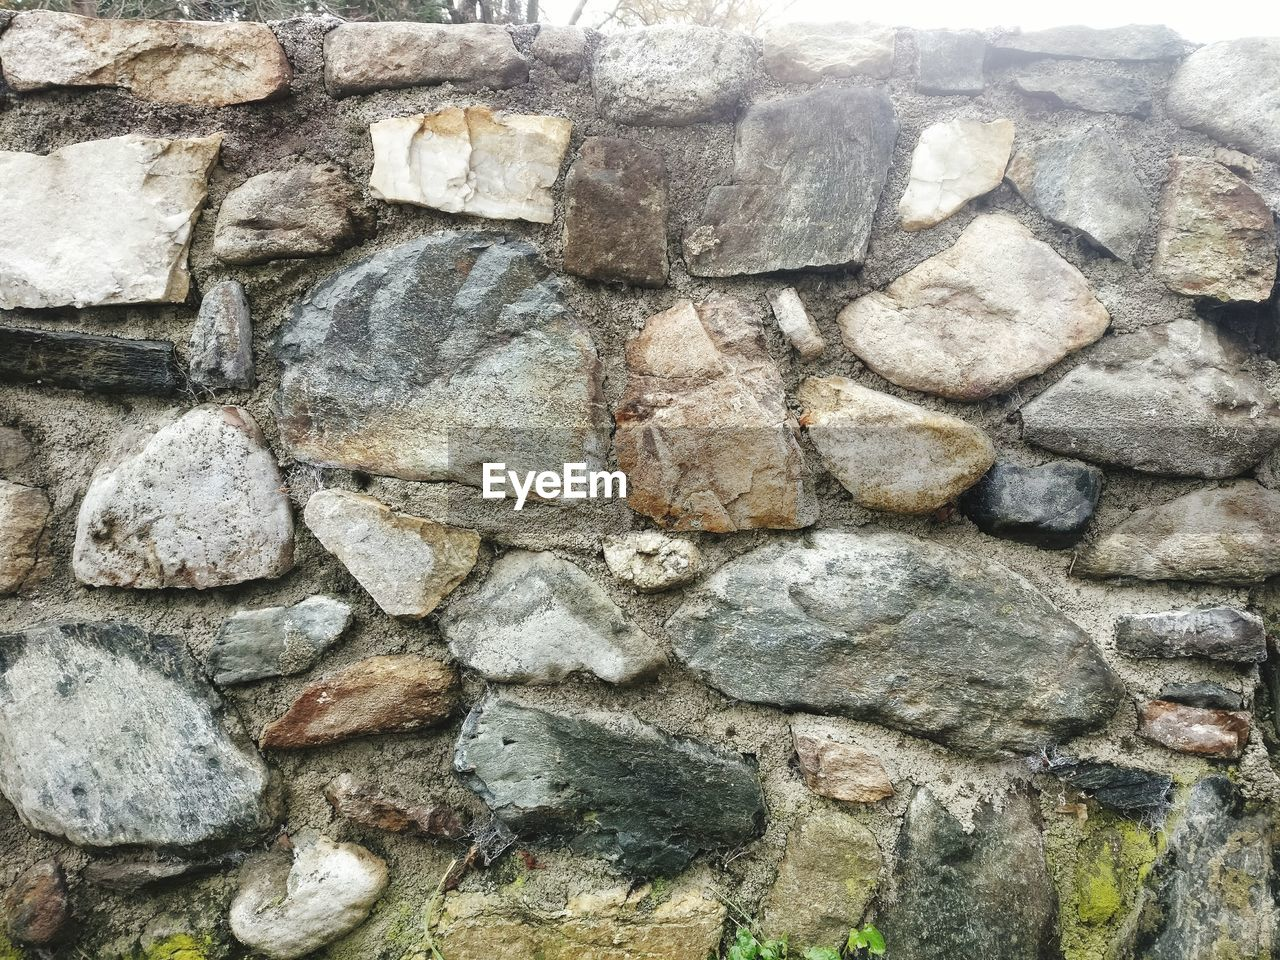 stone material, stone - object, rock - object, backgrounds, architecture, textured, no people, built structure, full frame, outdoors, close-up, day, nature, building exterior